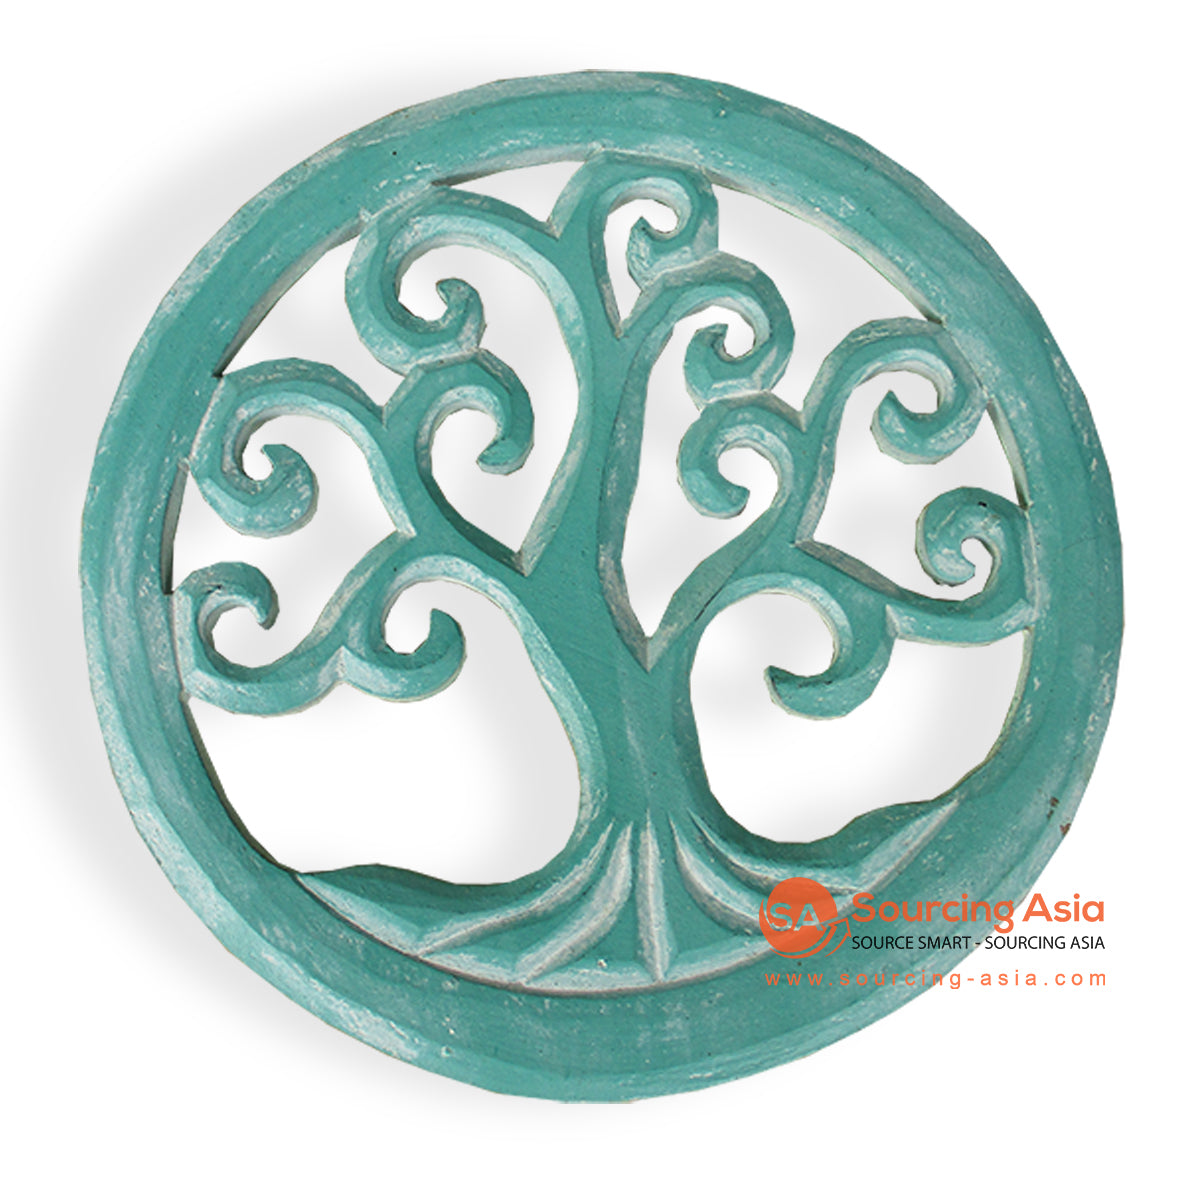 LUH013-20TU PANEL DECORATION TURQUOISE